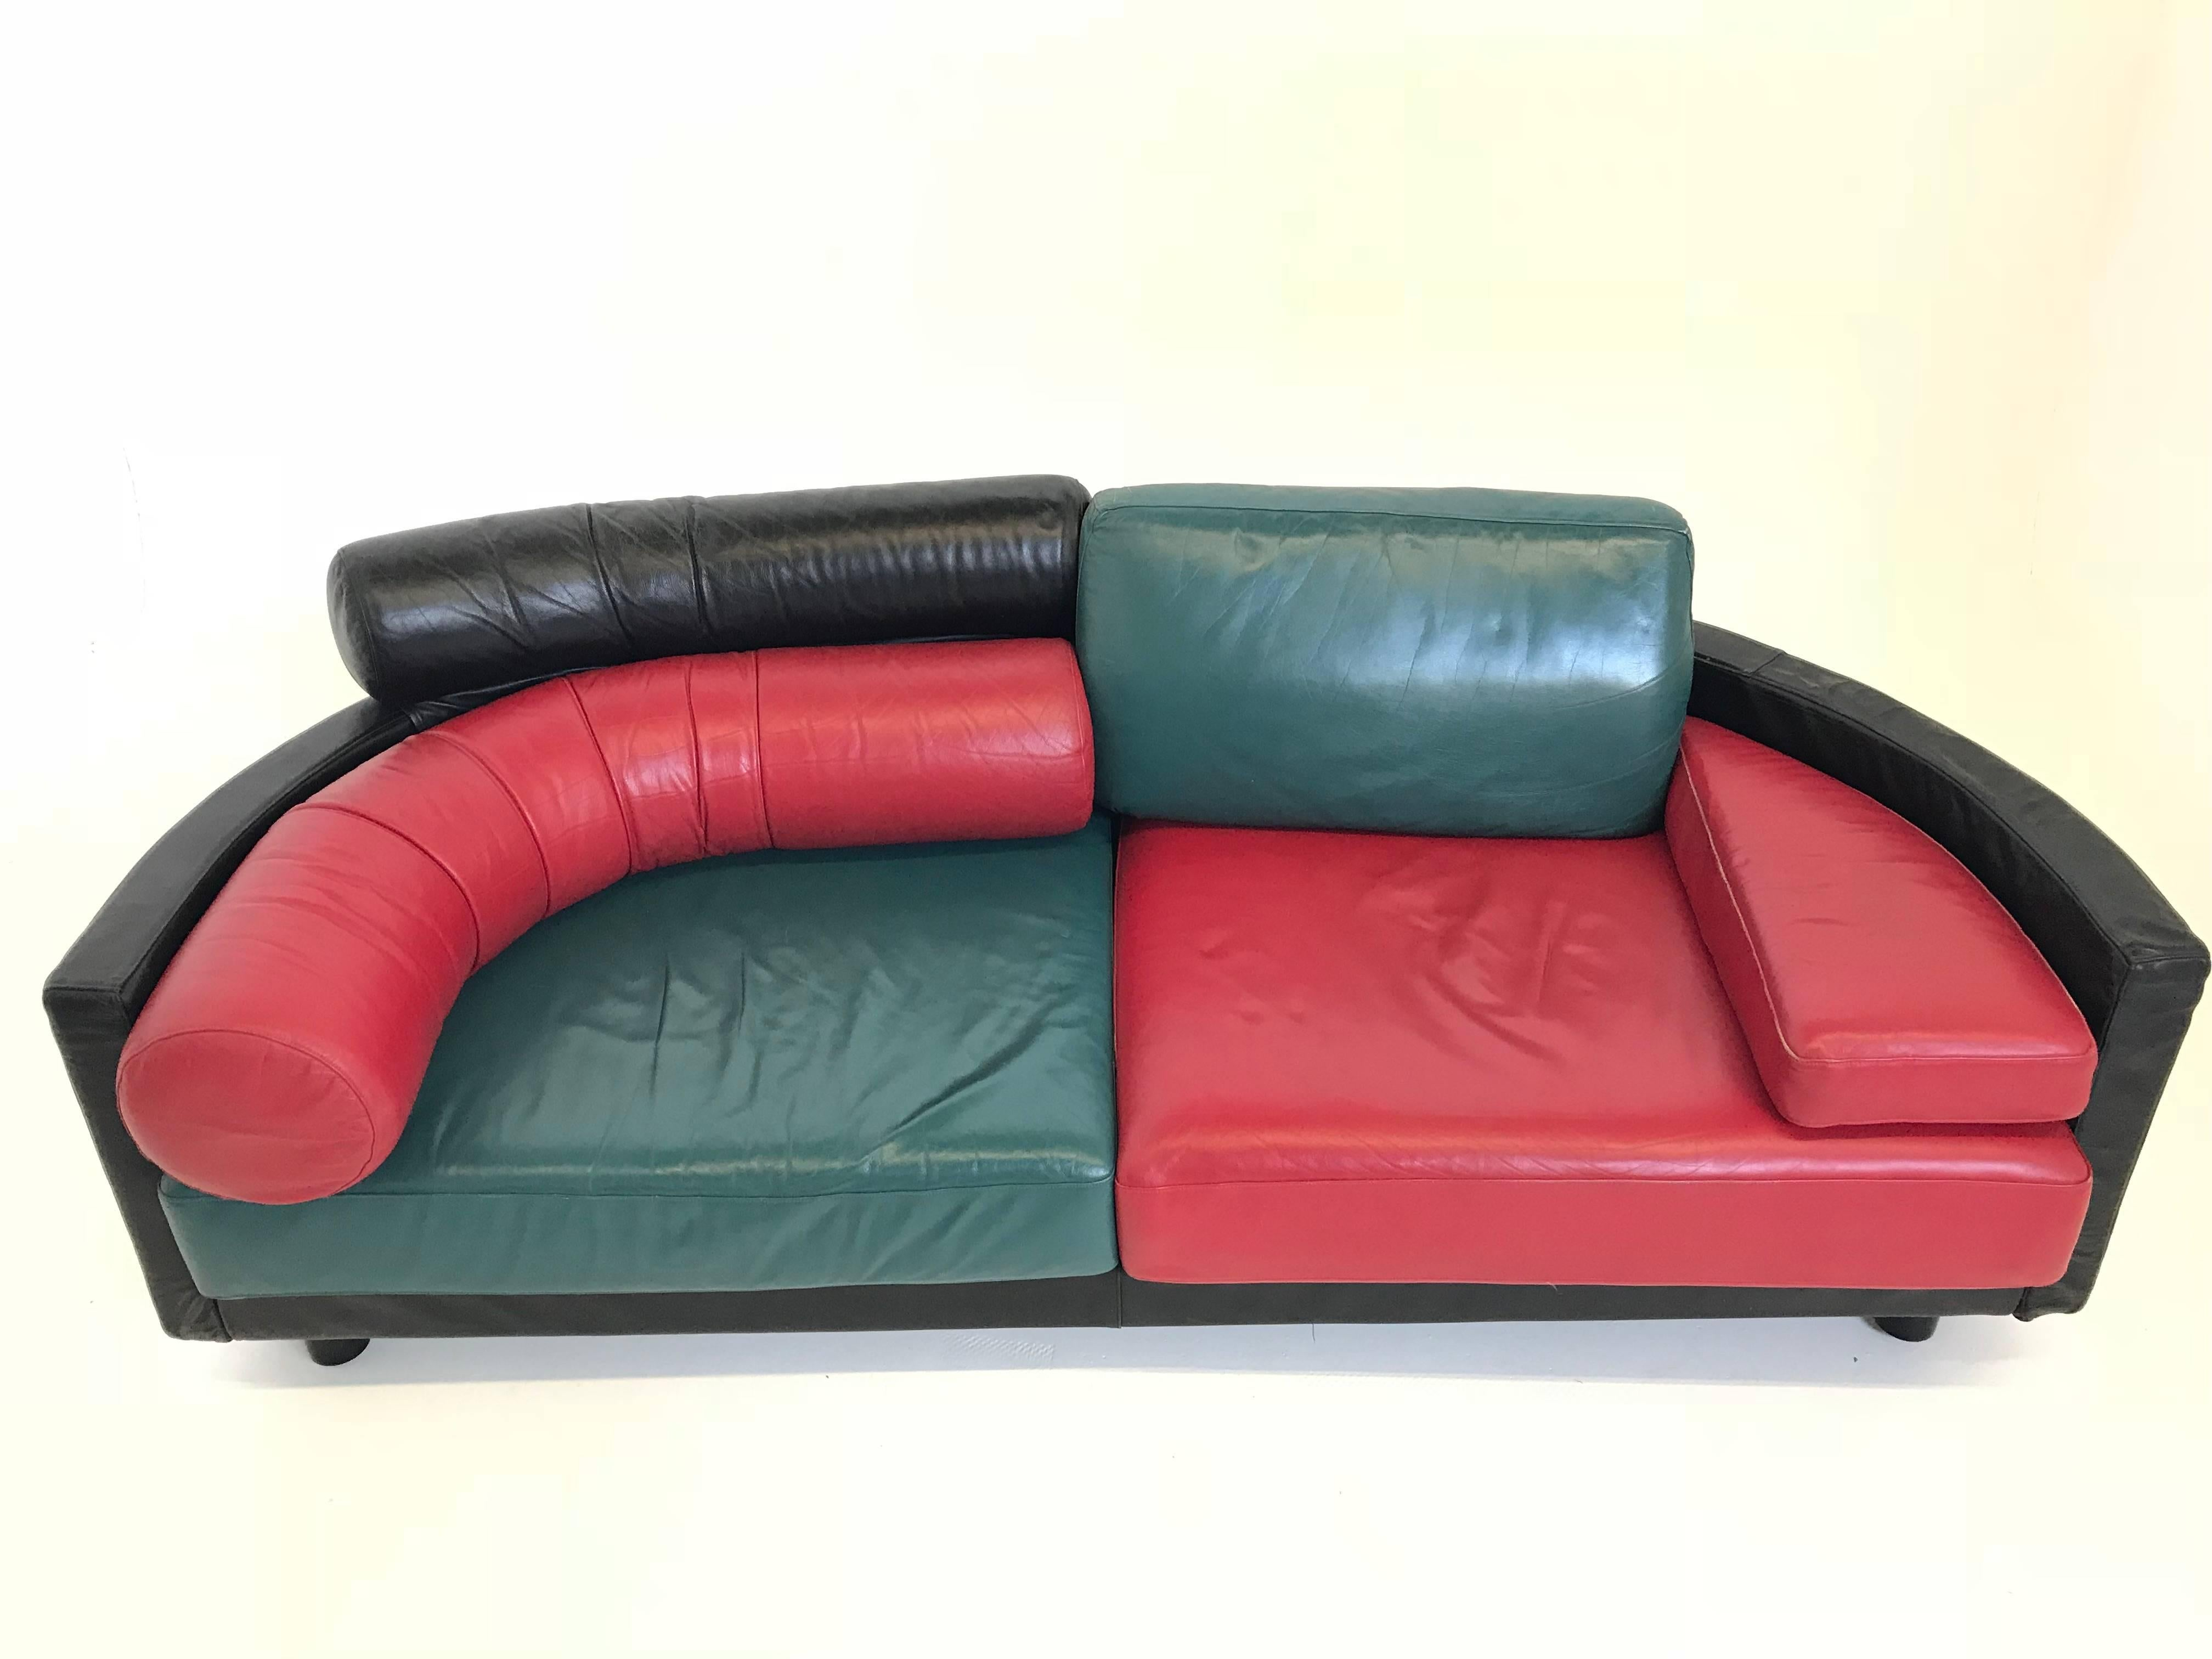 Late 20th Century Vintage Italian Leather Sofa By Guido Faleschini For I 4  Mariani For Sale